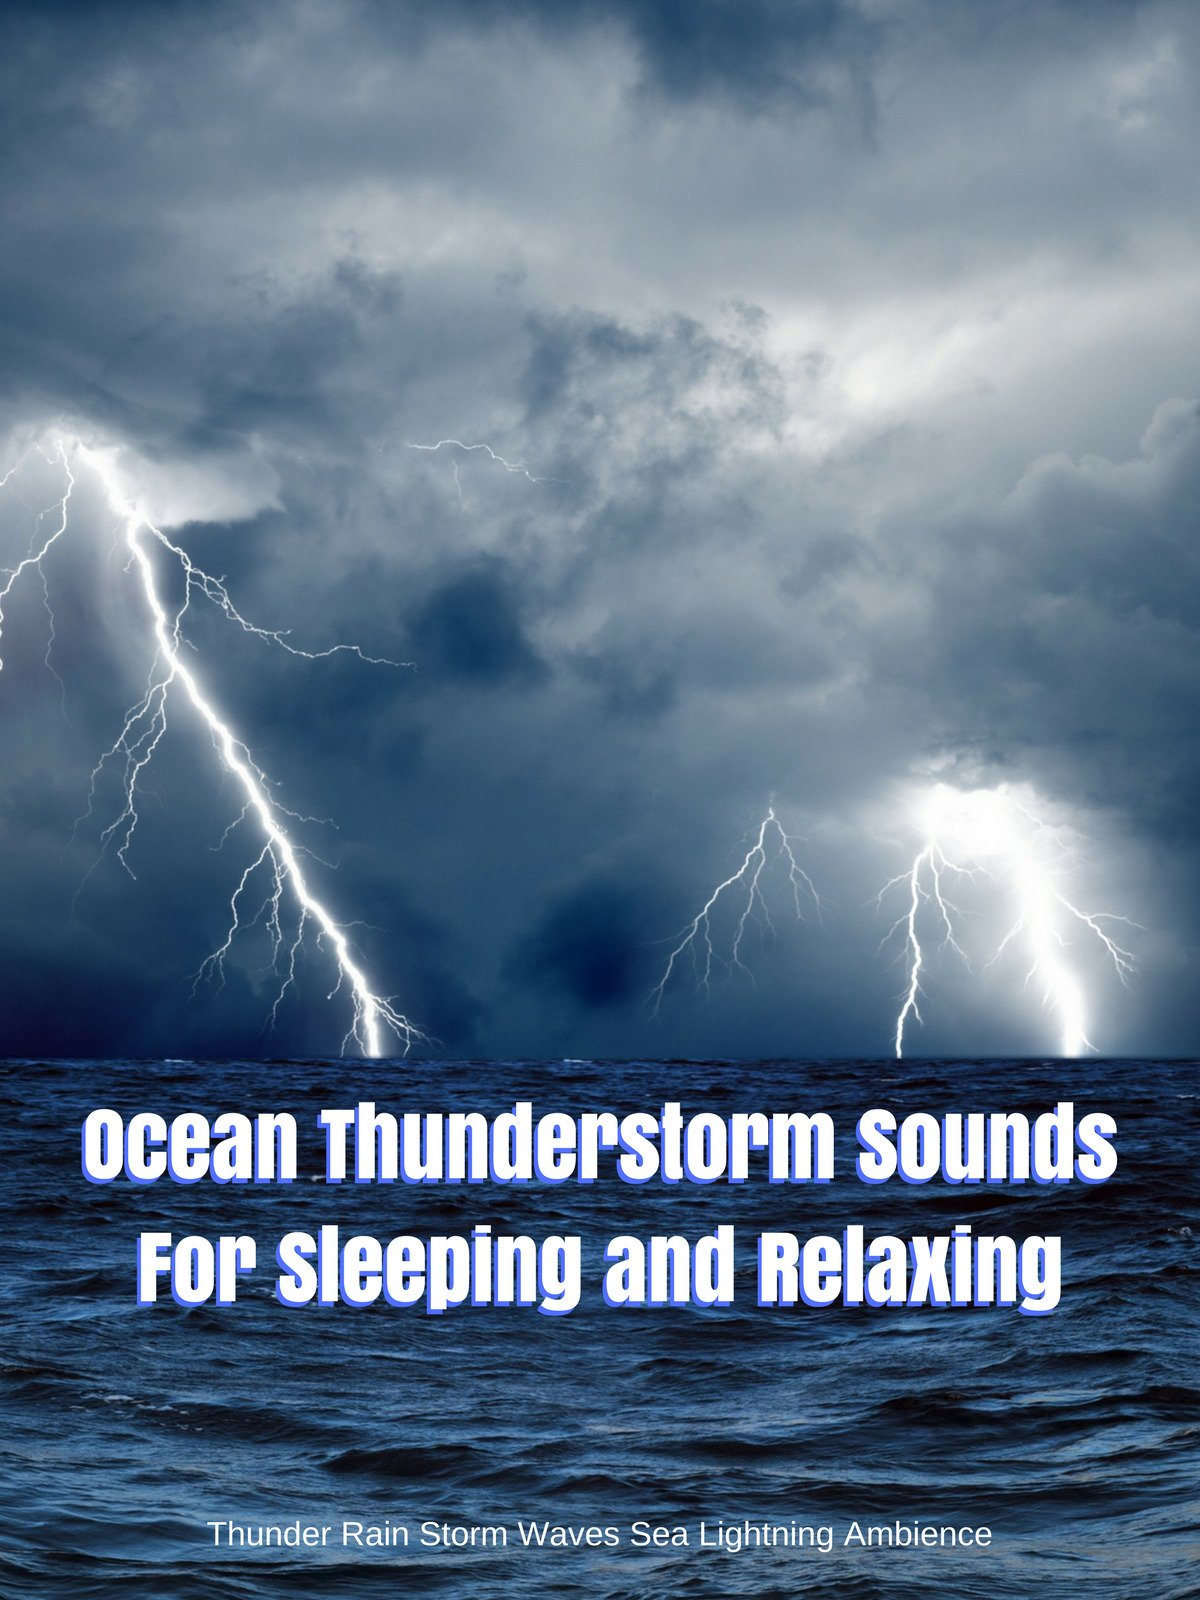 Ocean Thunderstorm Sounds For Sleeping and Relaxing